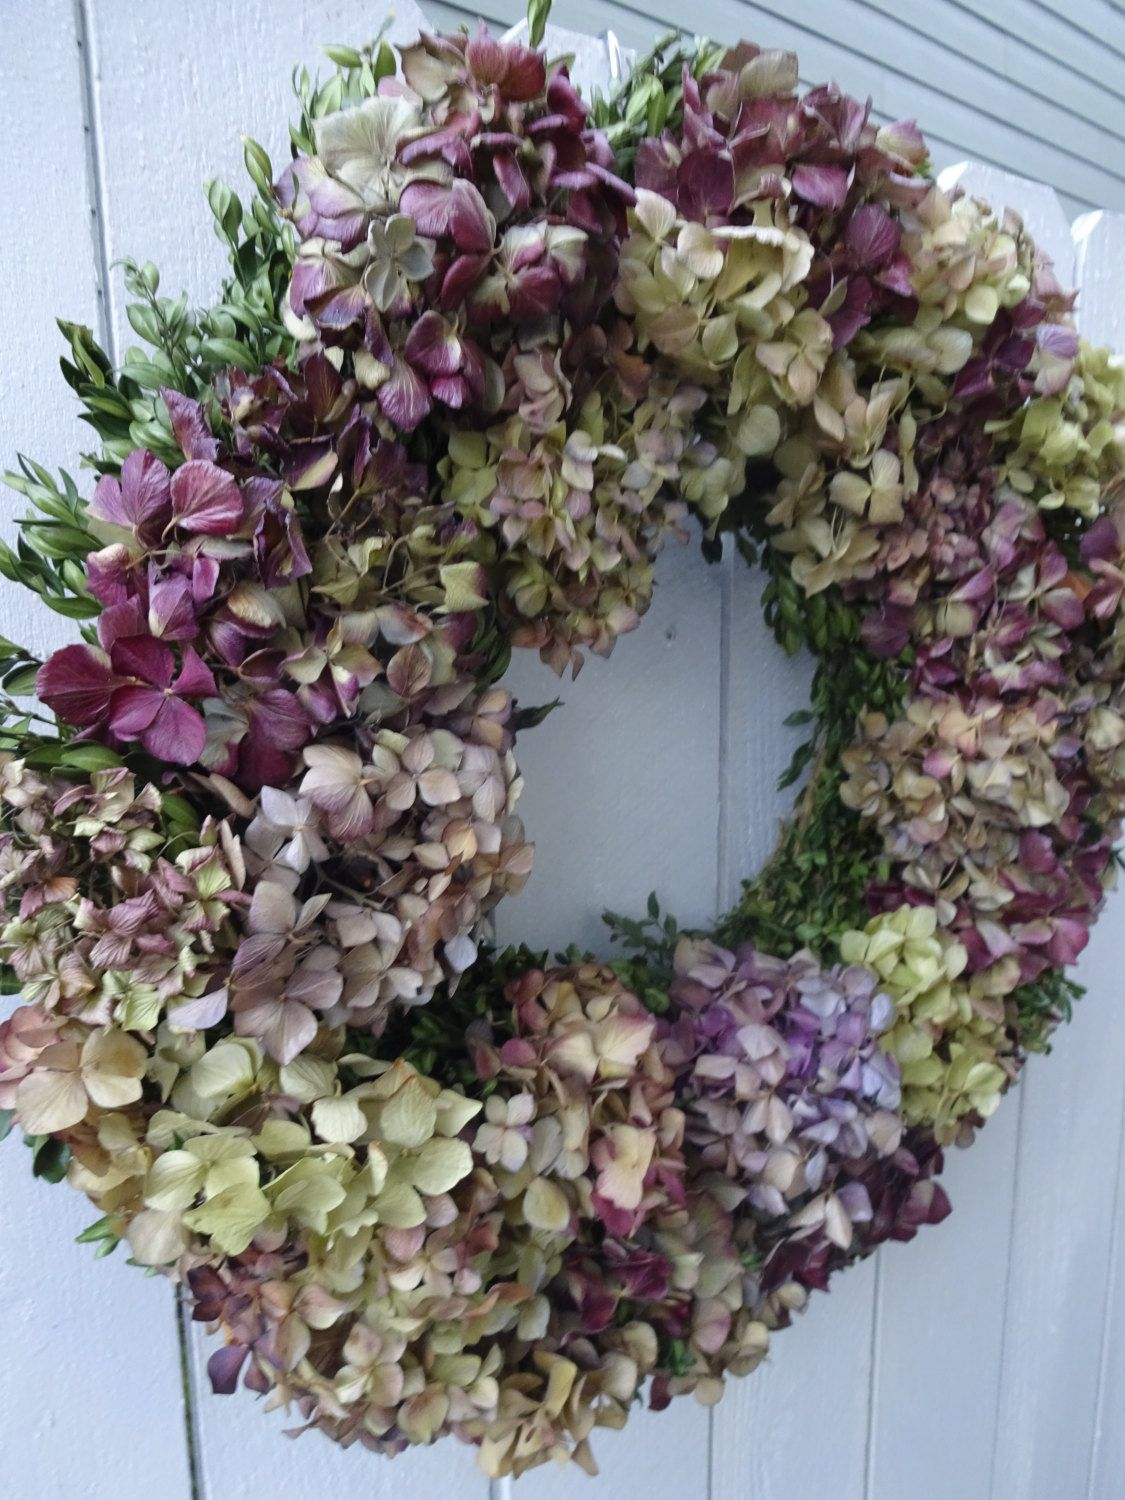 Hydrangea Wreath Boxwood Wreath Dried Wreath Natural Wreath Door Wreath Home Decor Easter Wreath Mothers Day